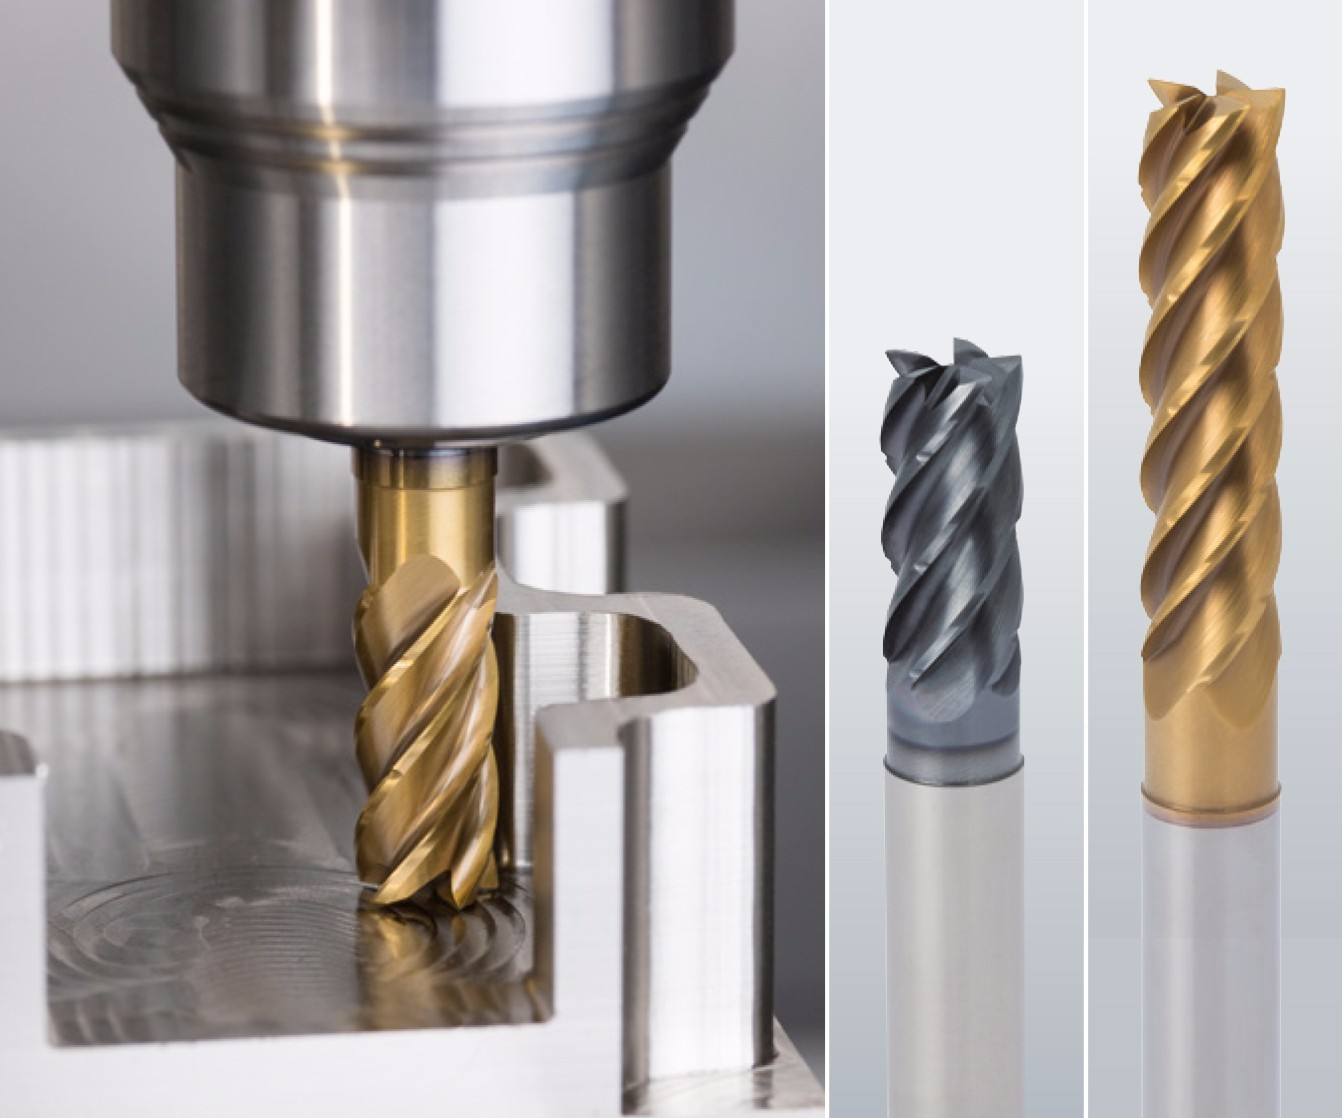 Emuge trochoidal milling tools